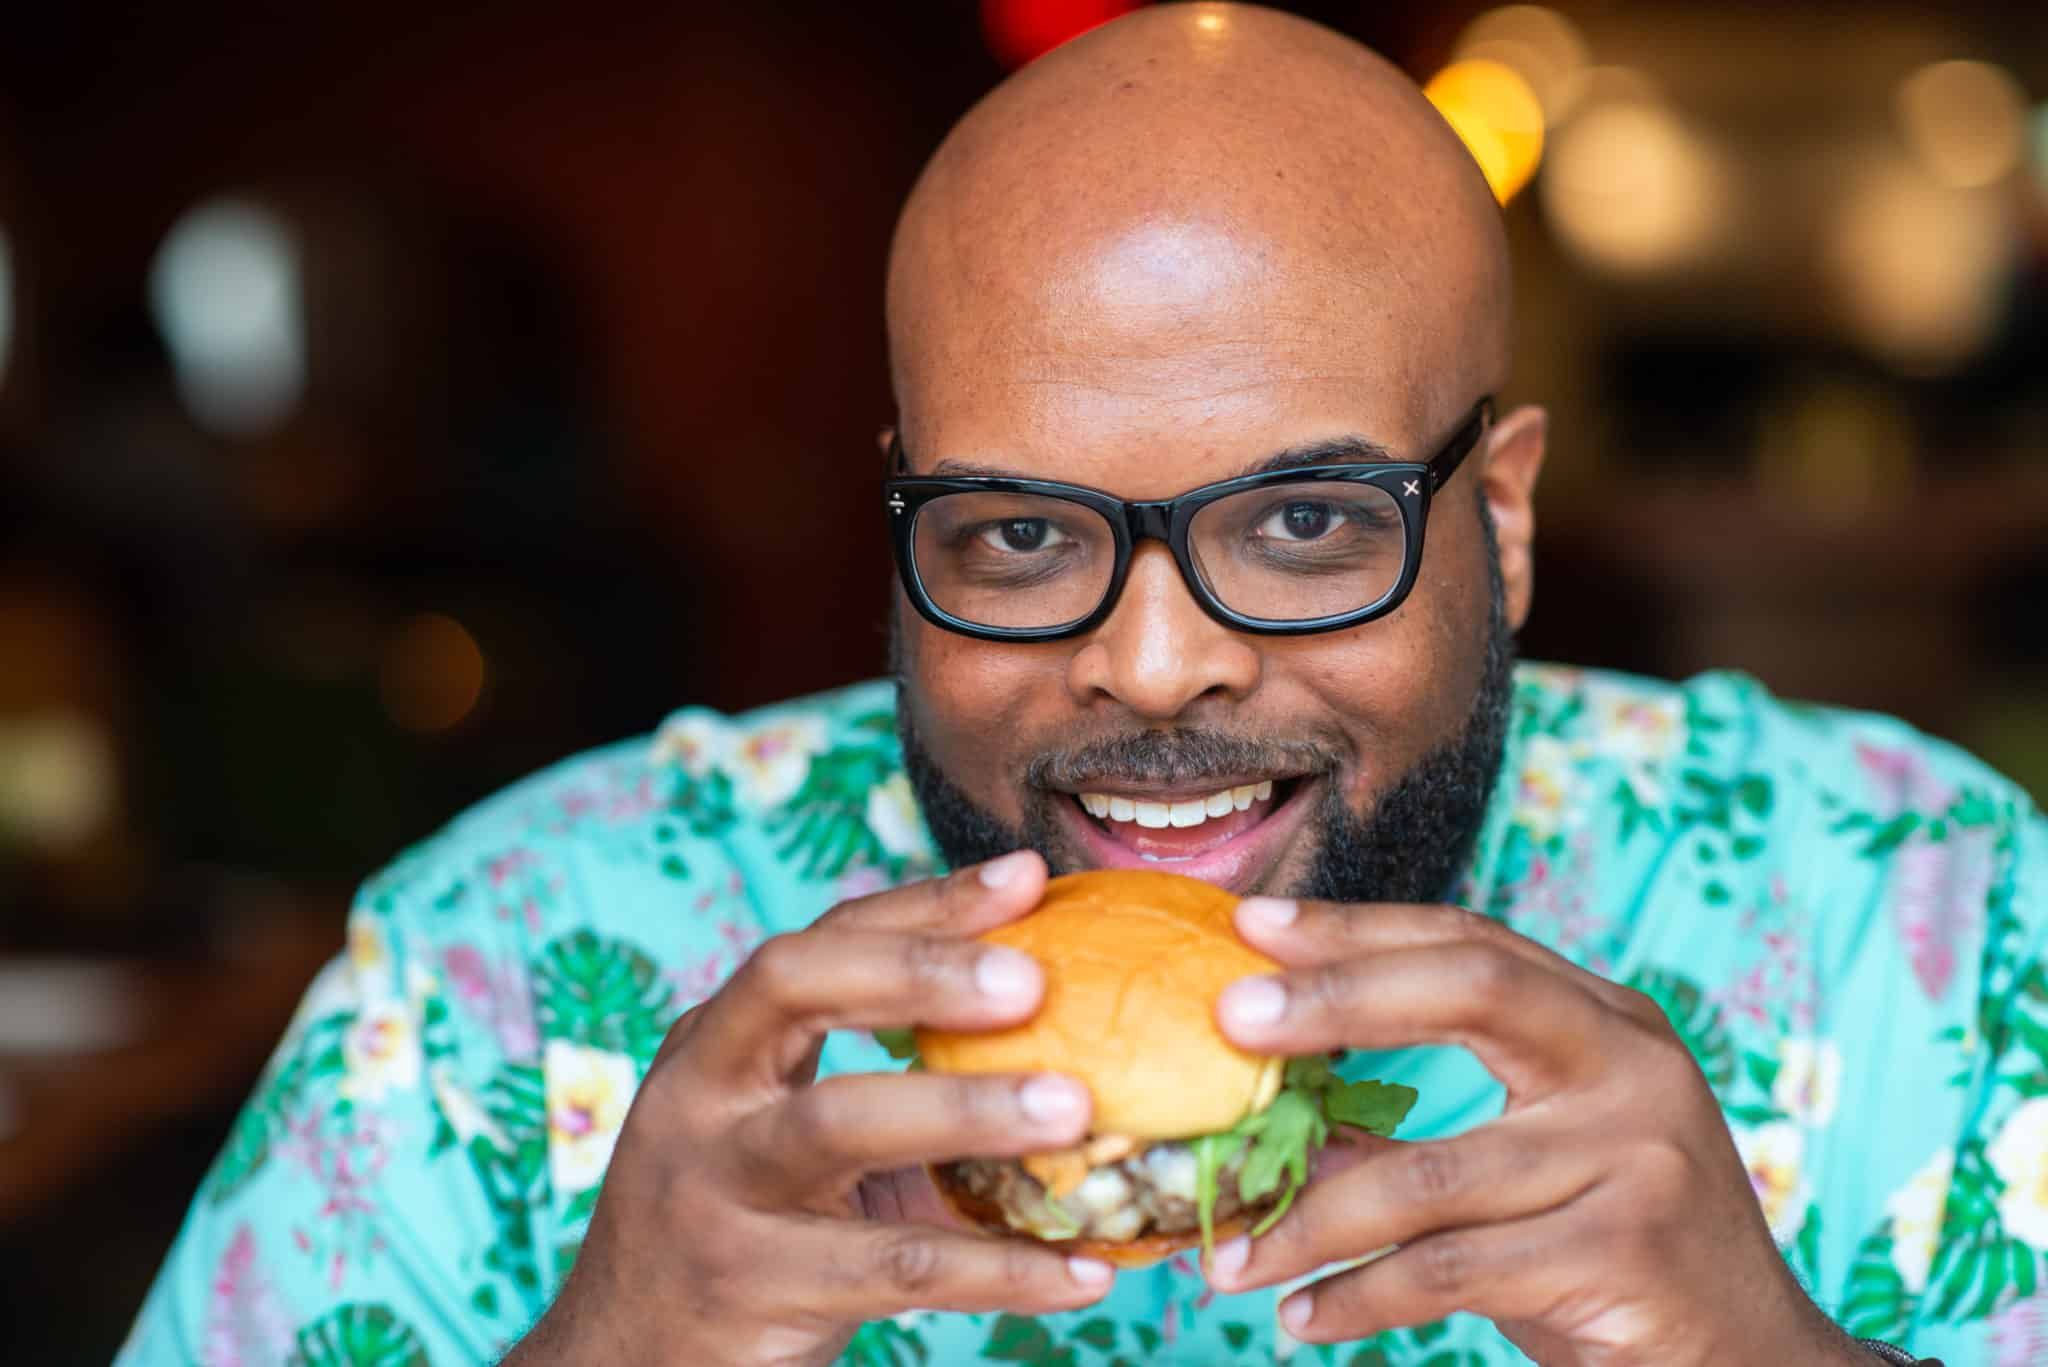 Amos Cooper Jr. eating a burger at Alley Twenty Six